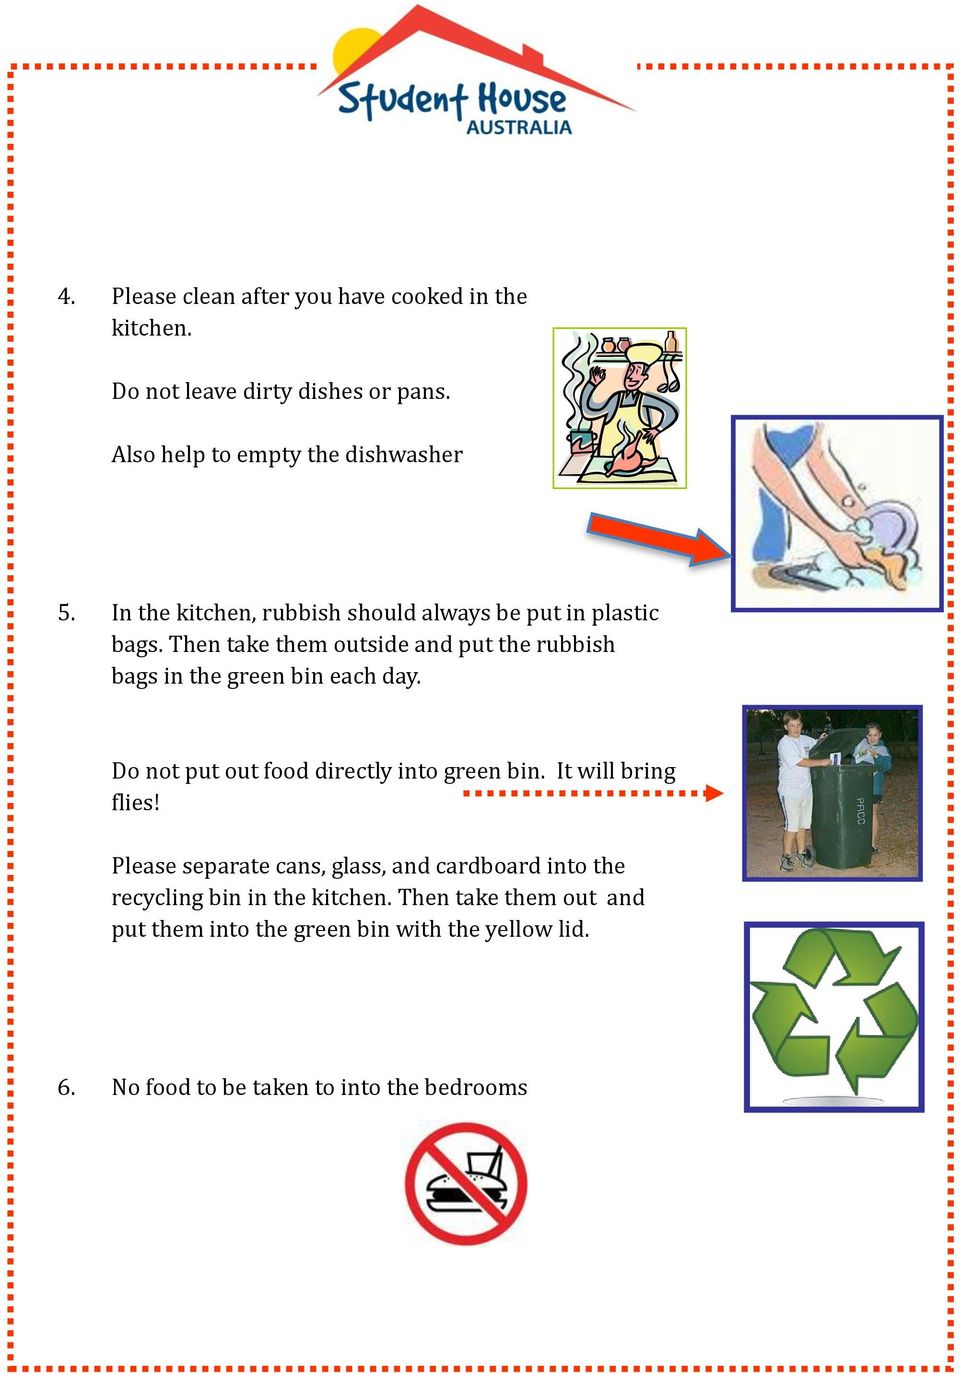 Then take them outside and put the rubbish bags in the green bin each day. Do not put out food directly into green bin.